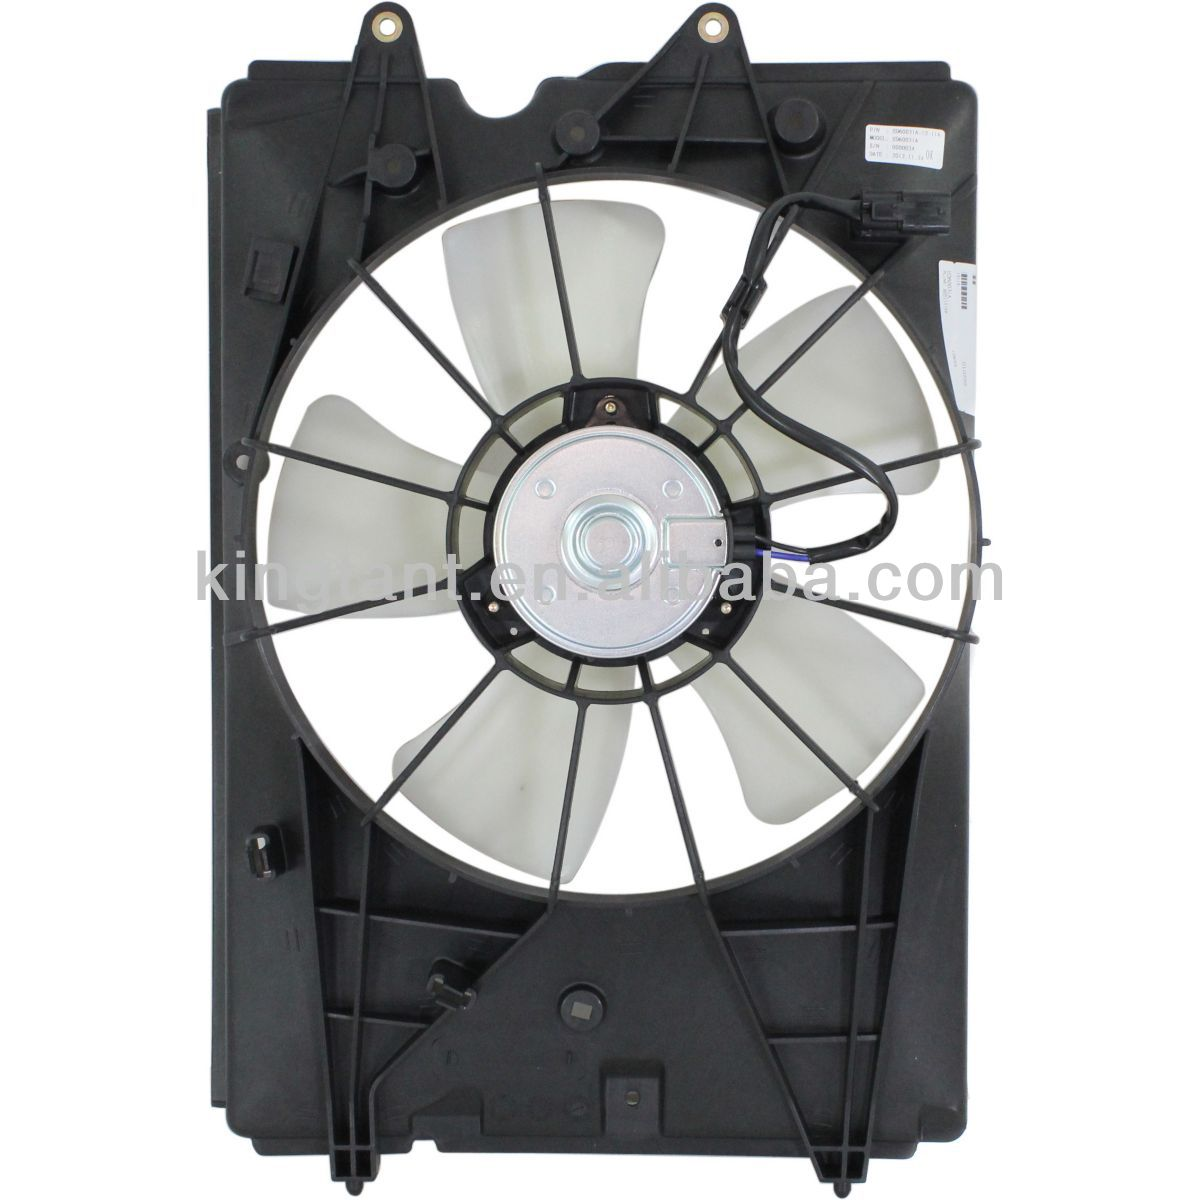 RADIATOR FAN FOR HONDA ACCORD 2010-13 19030RN0A51-PFM